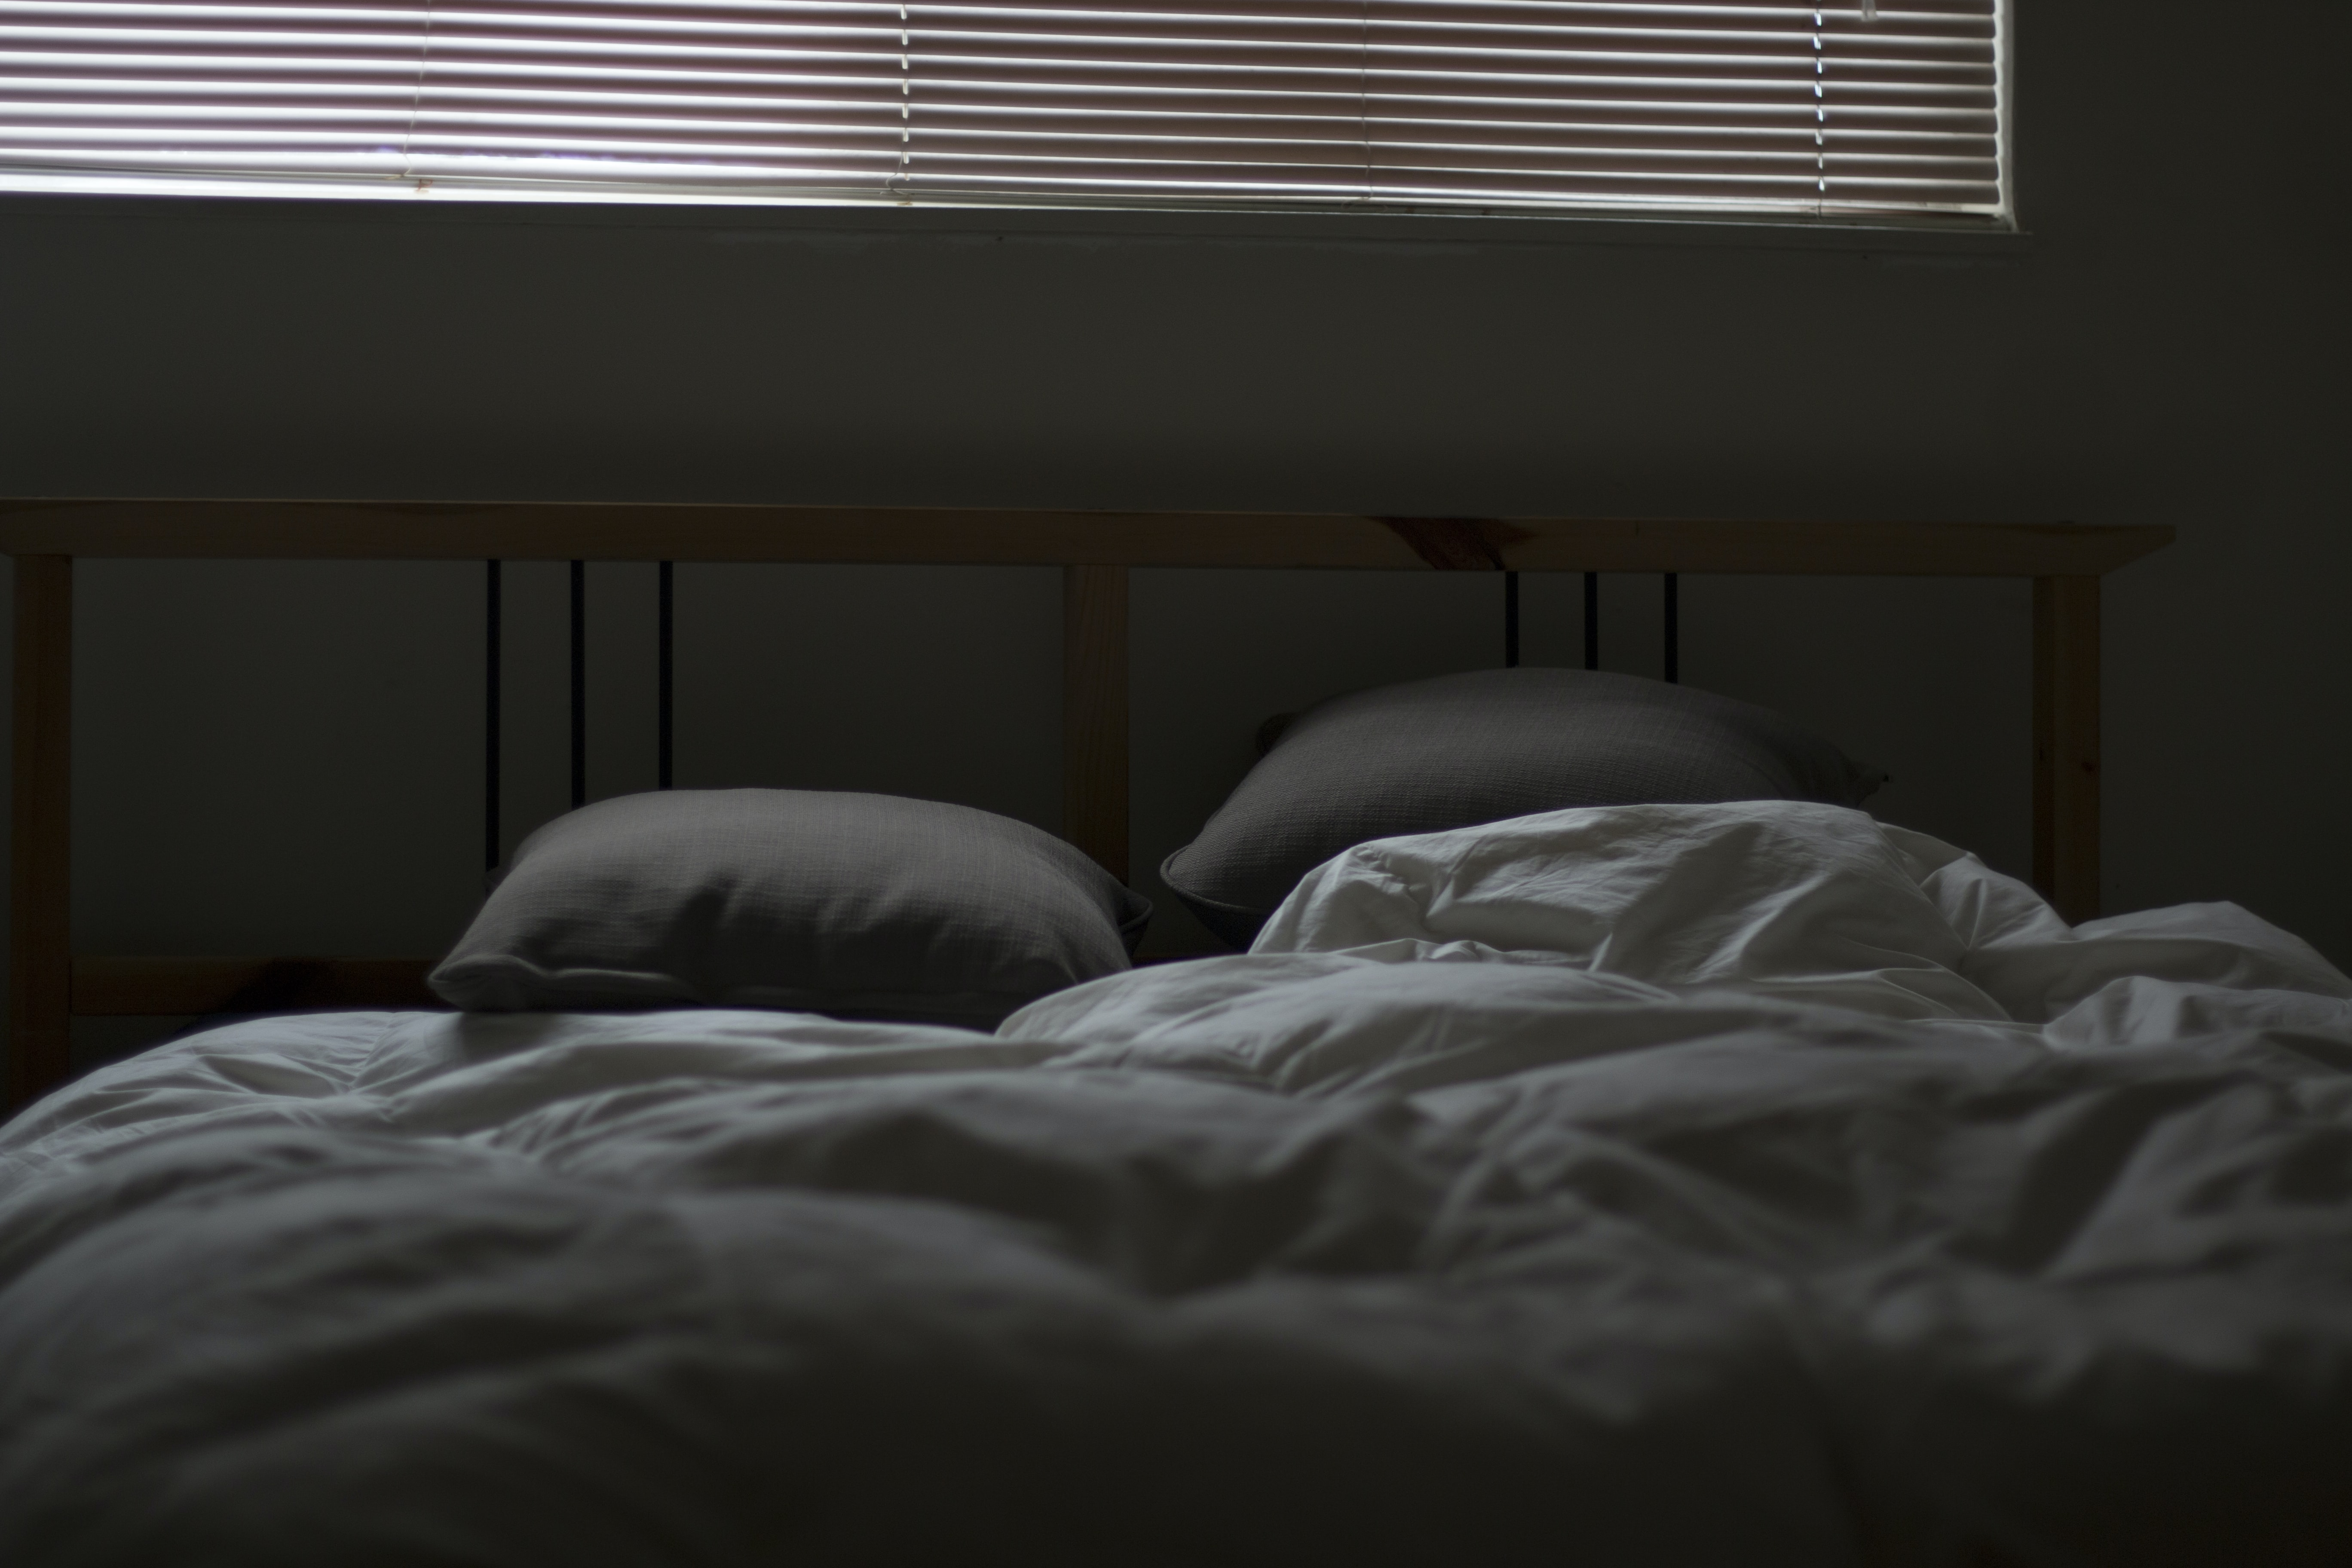 Ruffled gray covers and sheets with two pillows and a large window with blinds above it